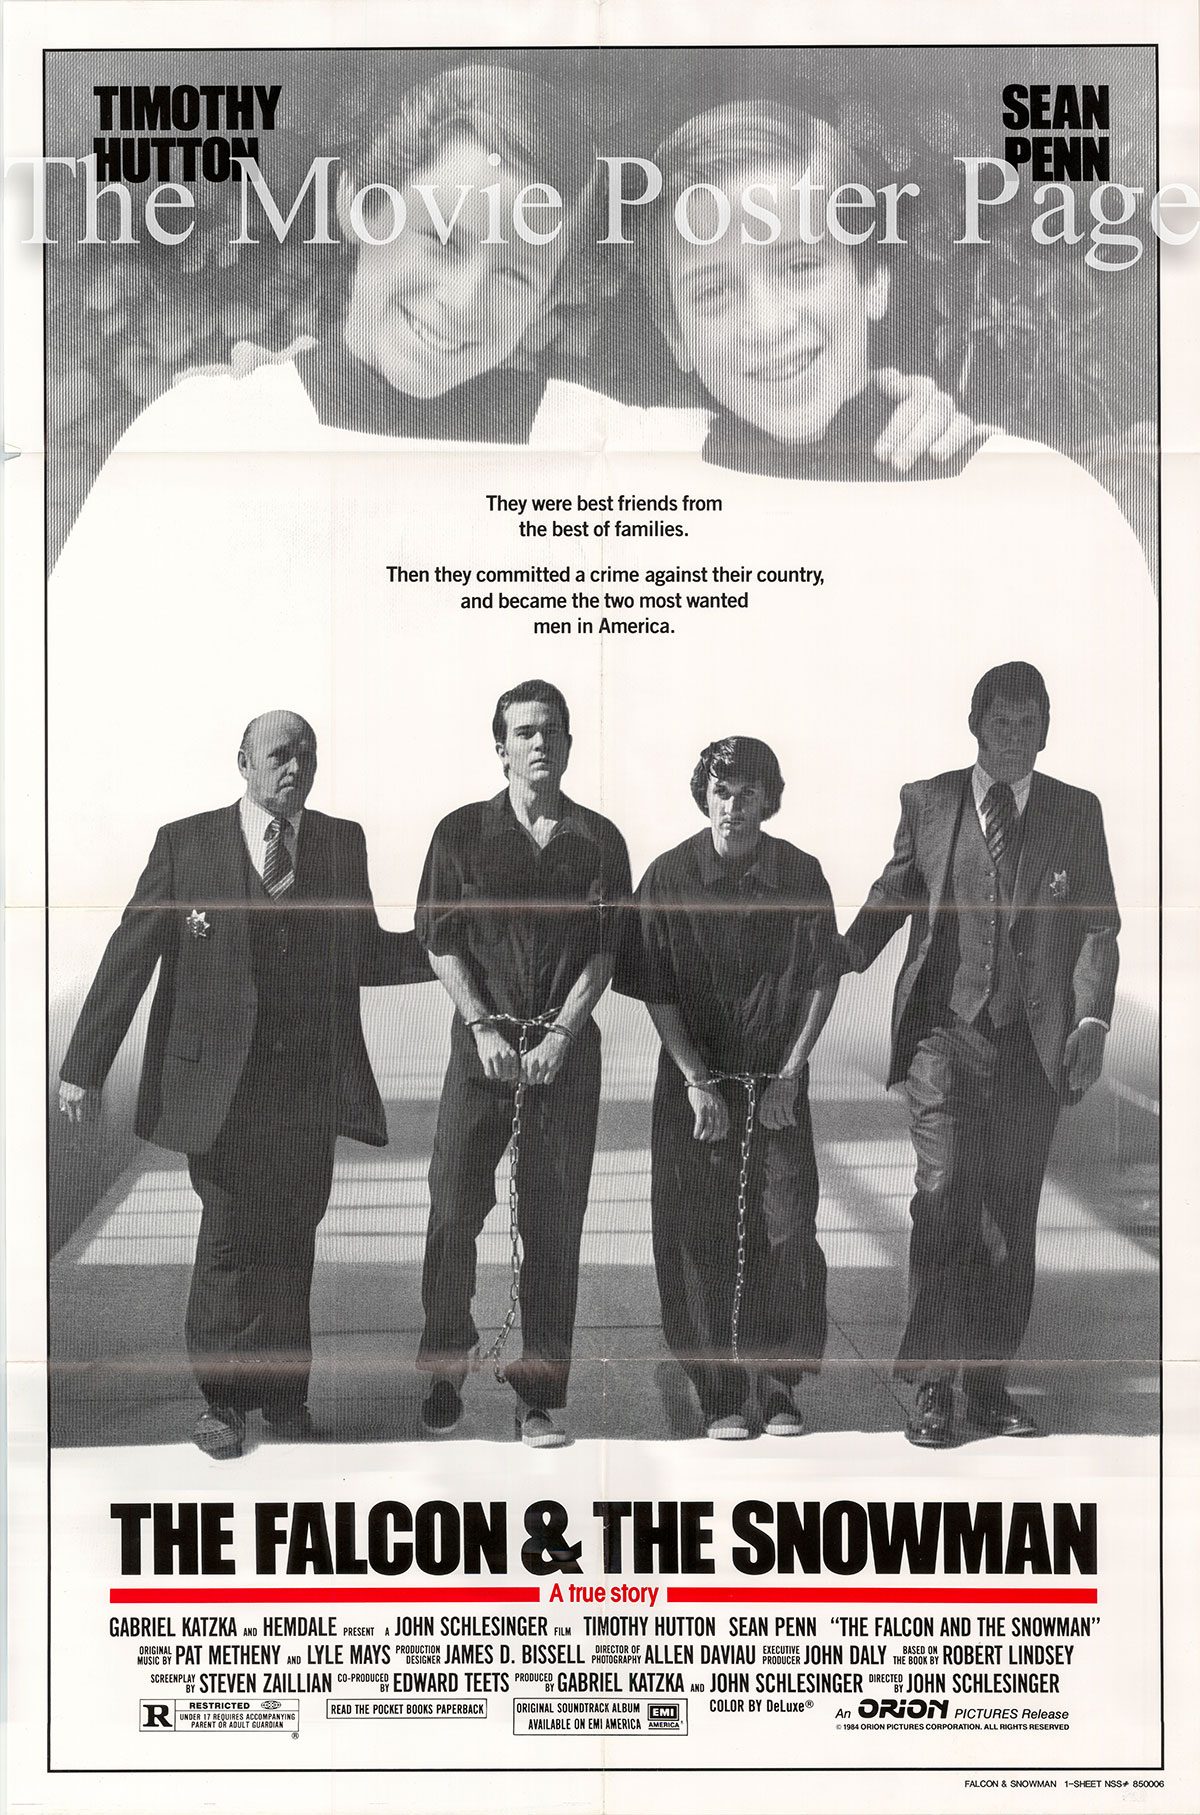 Pictured is a US one-sheet promotional poster for the 1984 John Schlesinger film The Falcon and the Snowman starring Sean Penn.